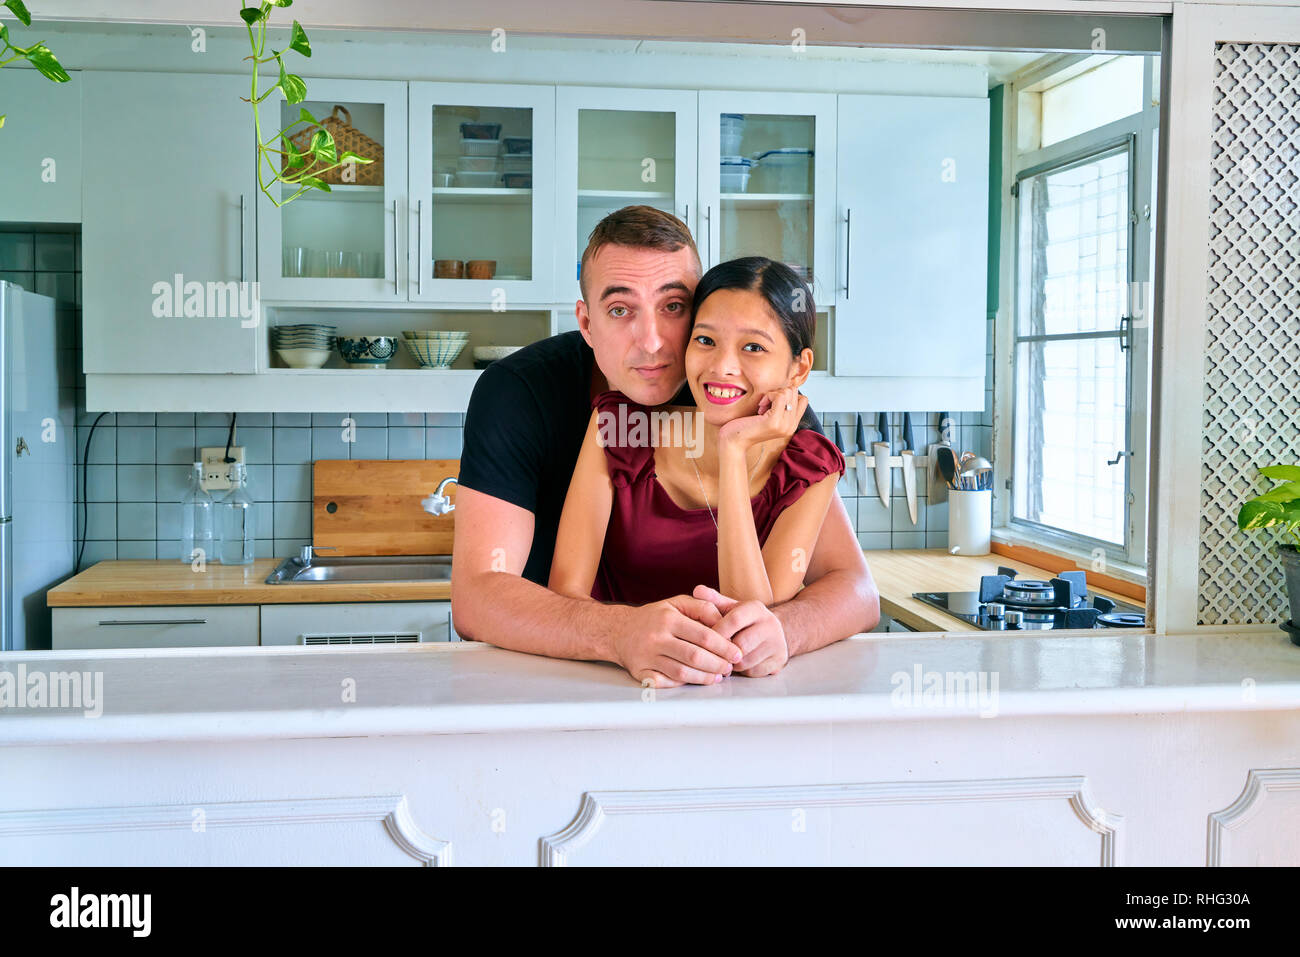 Lovely couple posing - hand on chin with smiling face and hugging - Stock Image